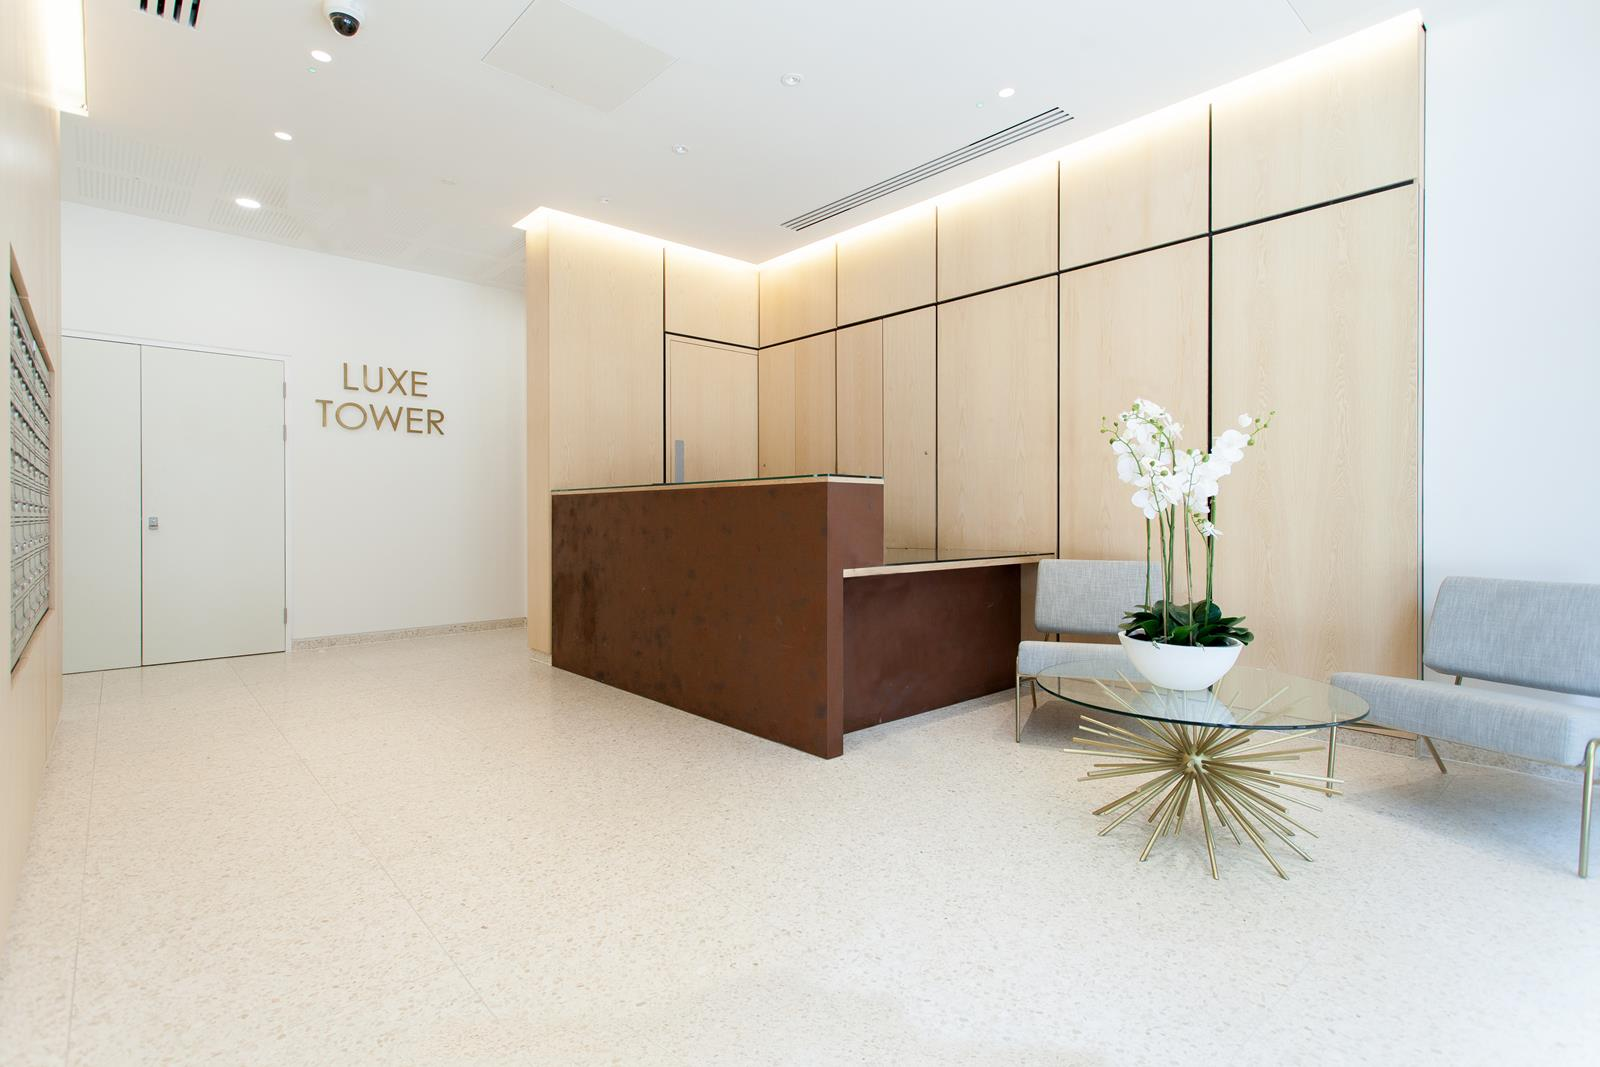 Lobby at The Lofts E1 By Q Apartments